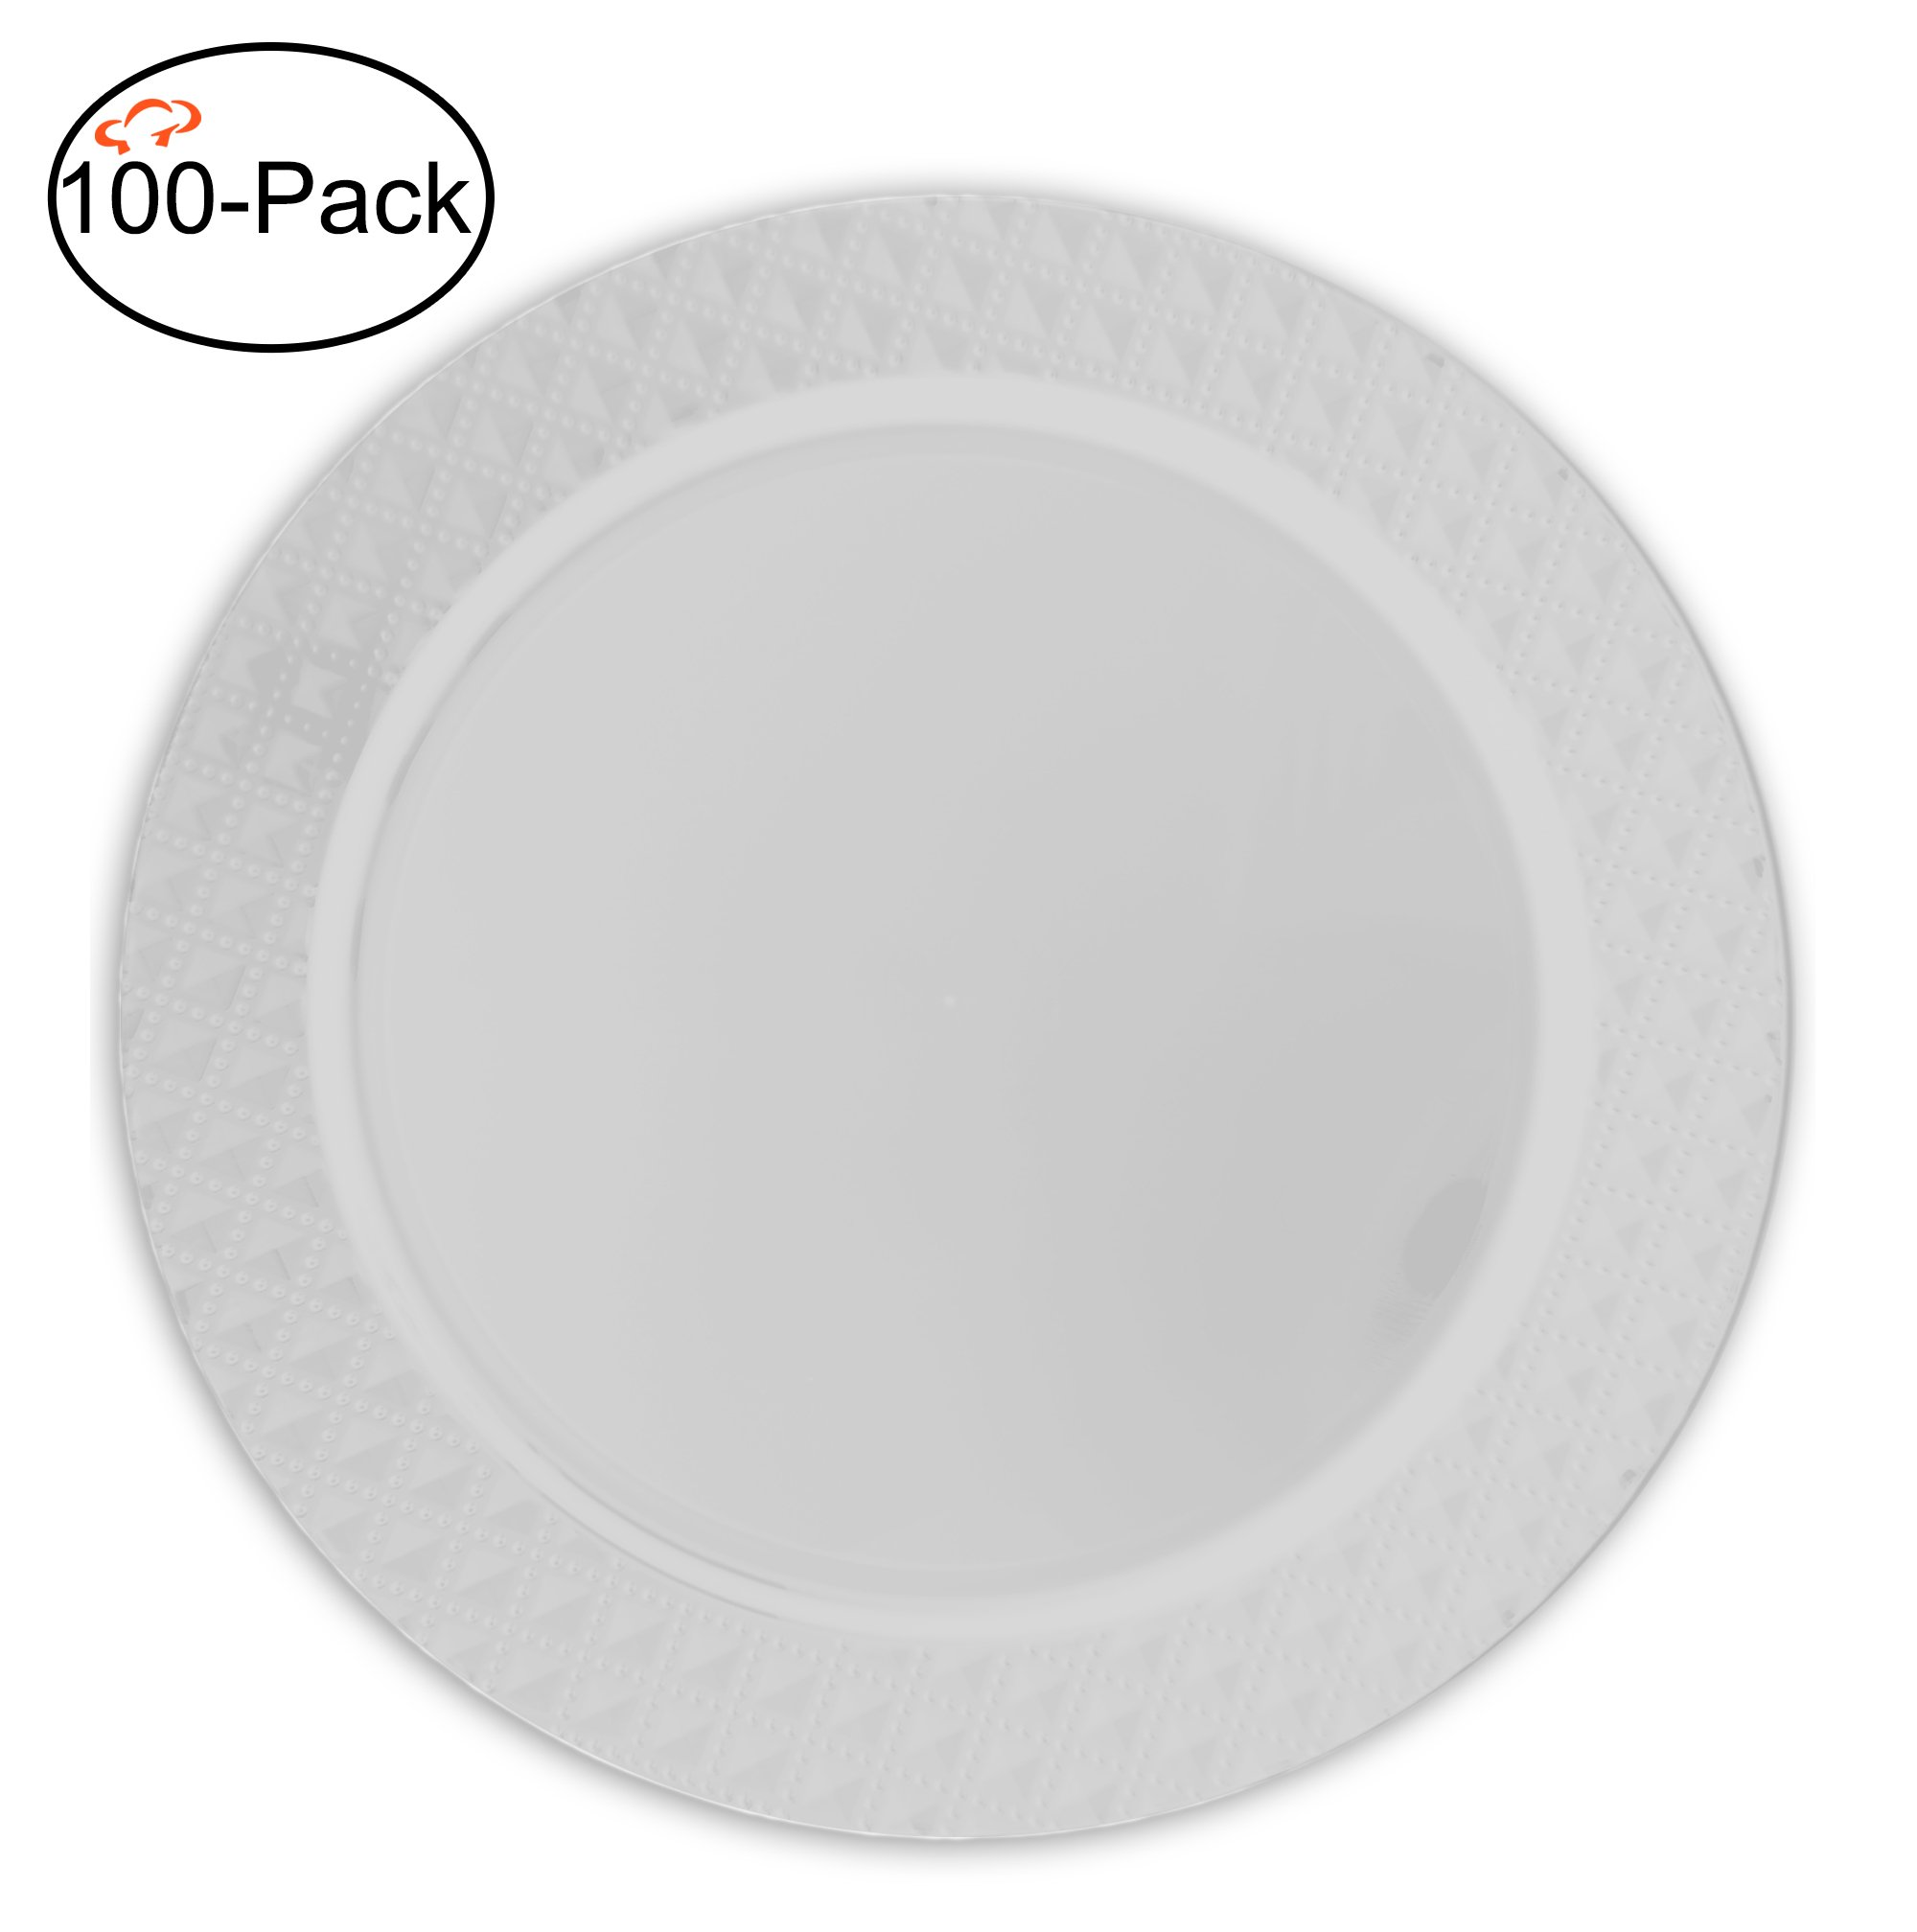 Tiger Chef 100-Pack 13 inch Round Clear Diamond Plastic Charger Plates Disposable Set of 2, 4, 6, 12 or 24 for Parties, Wedding, and Special Events